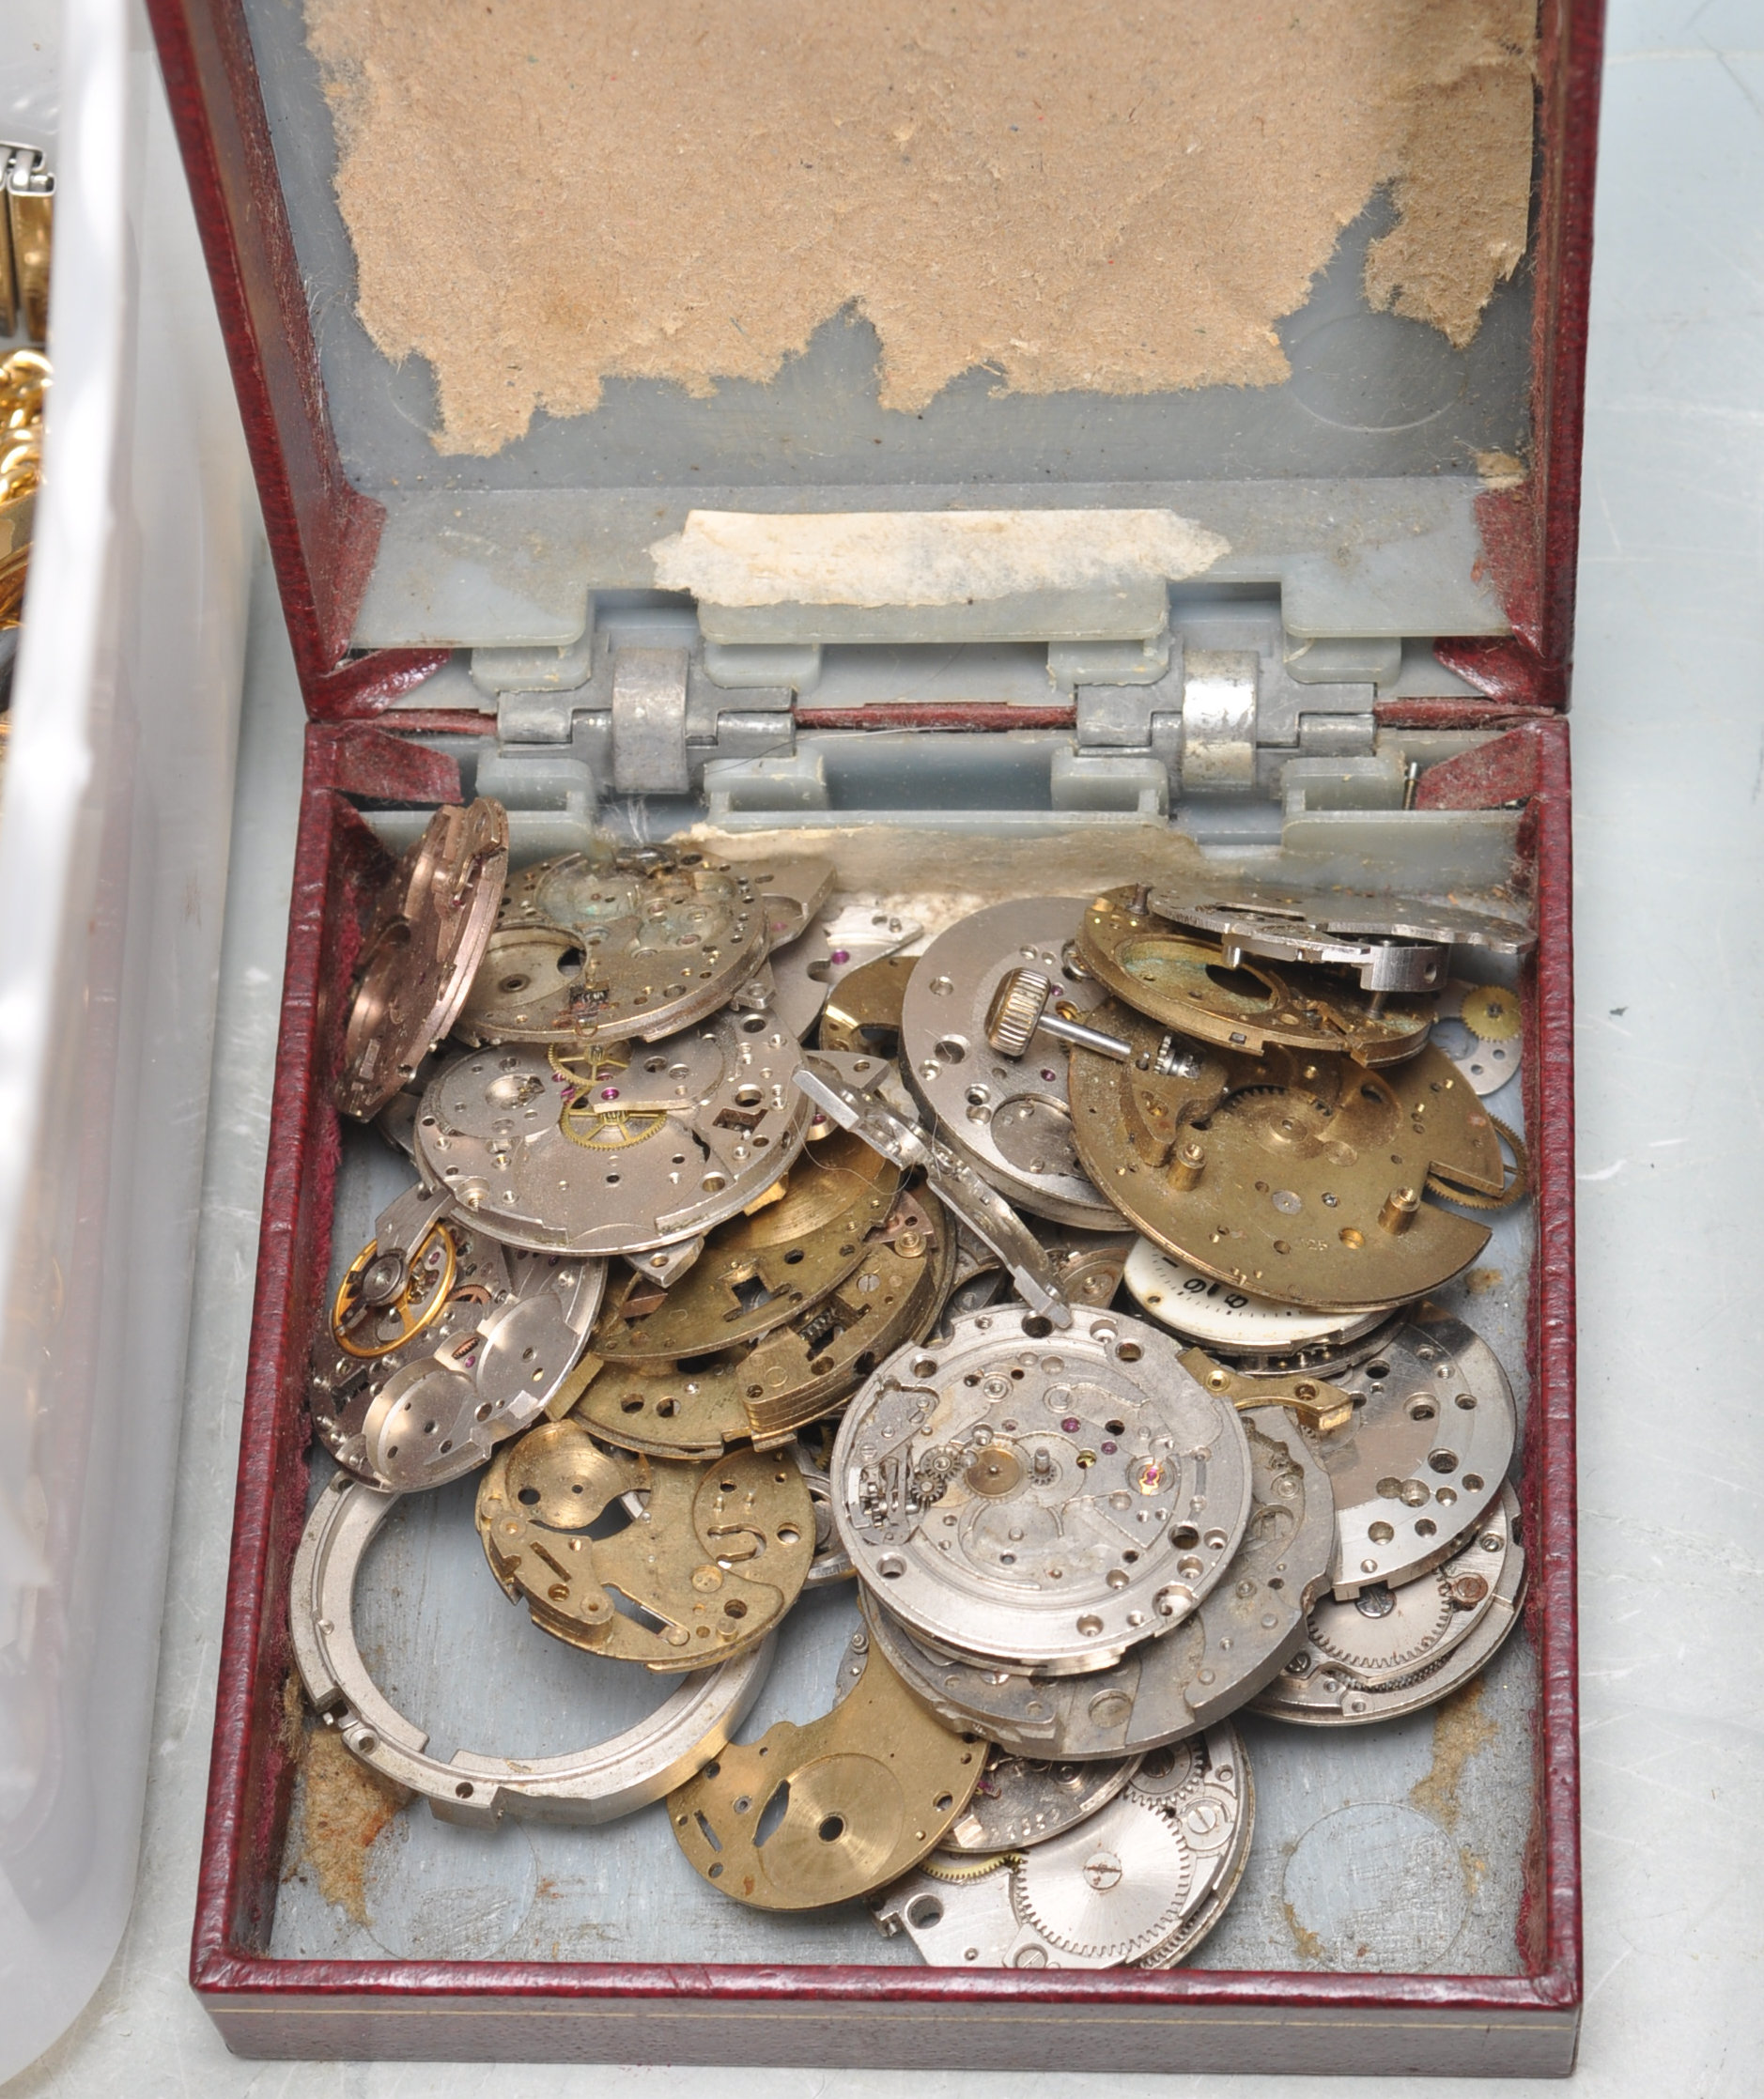 LARGE COLLECTION OF VARIOUS WATCH PARTS AND SPARES - Image 4 of 8